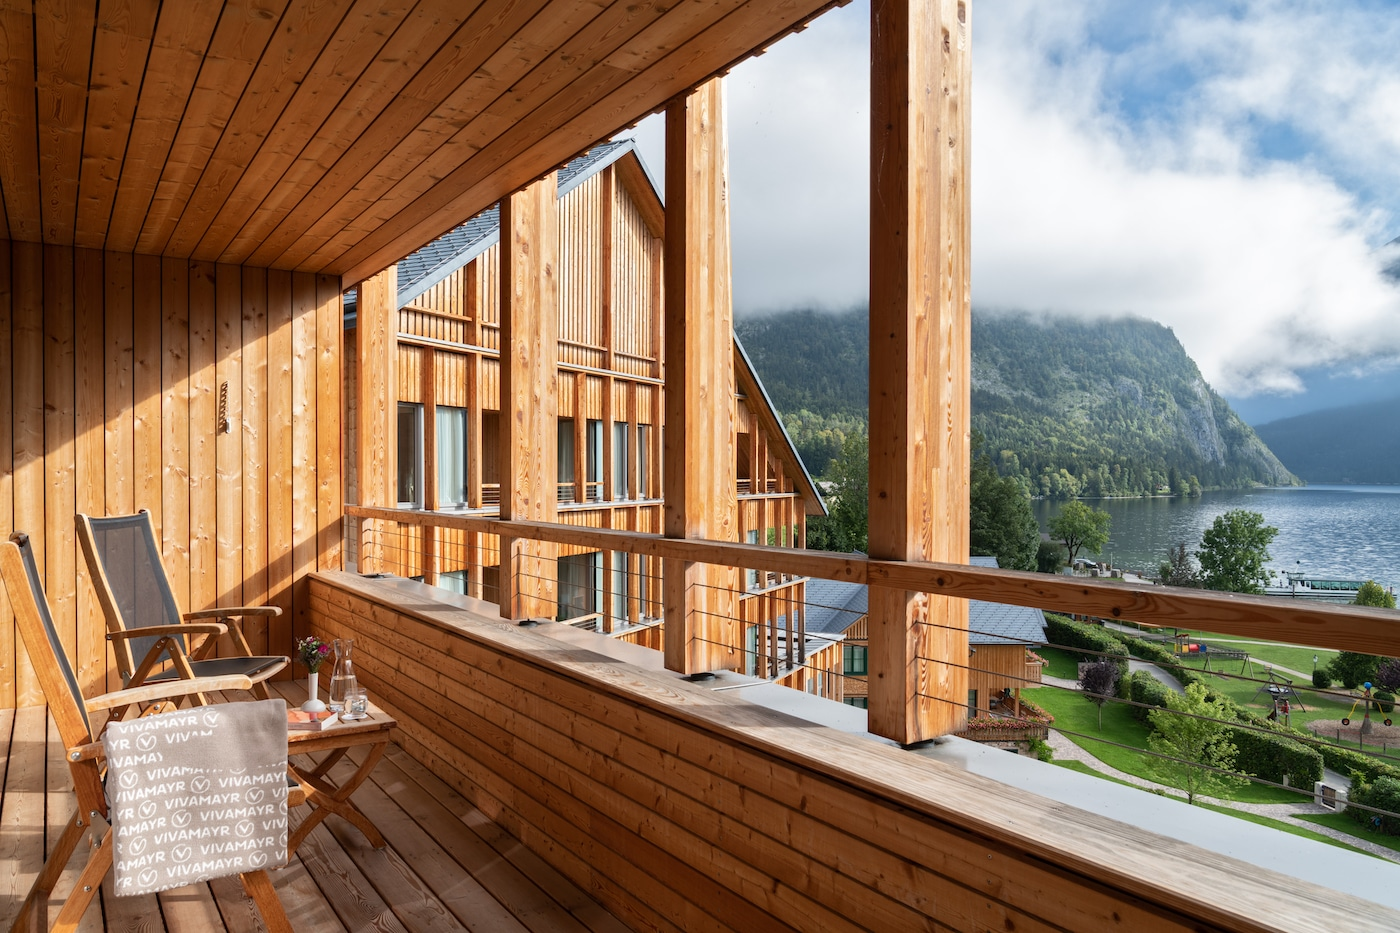 Balcony from Junior Suite with lake view VIVAMAYR Altausee